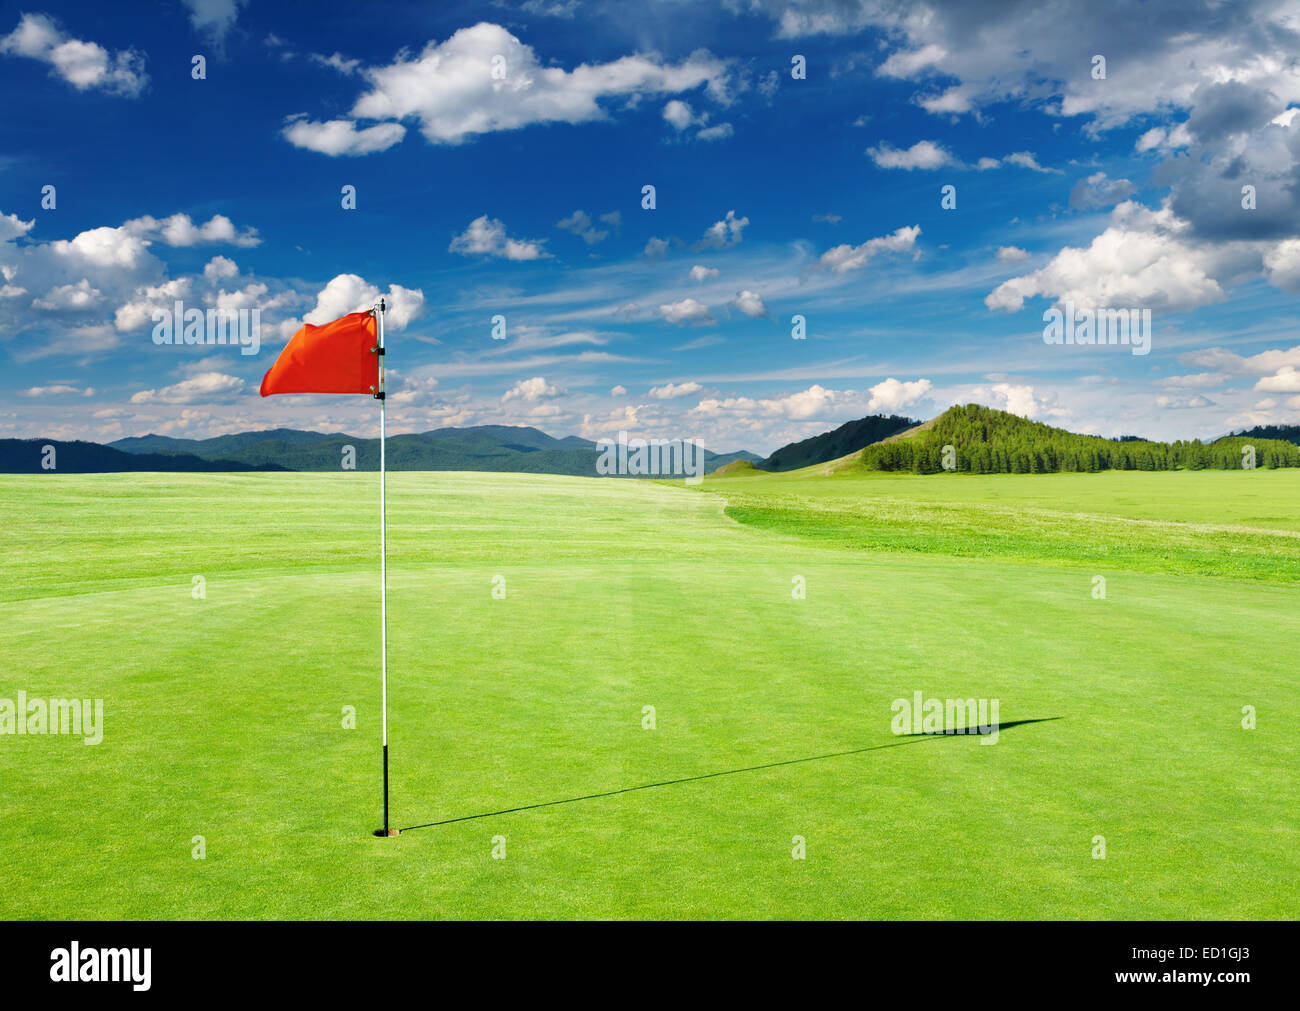 Golf field with red flag in the hole - Stock Image